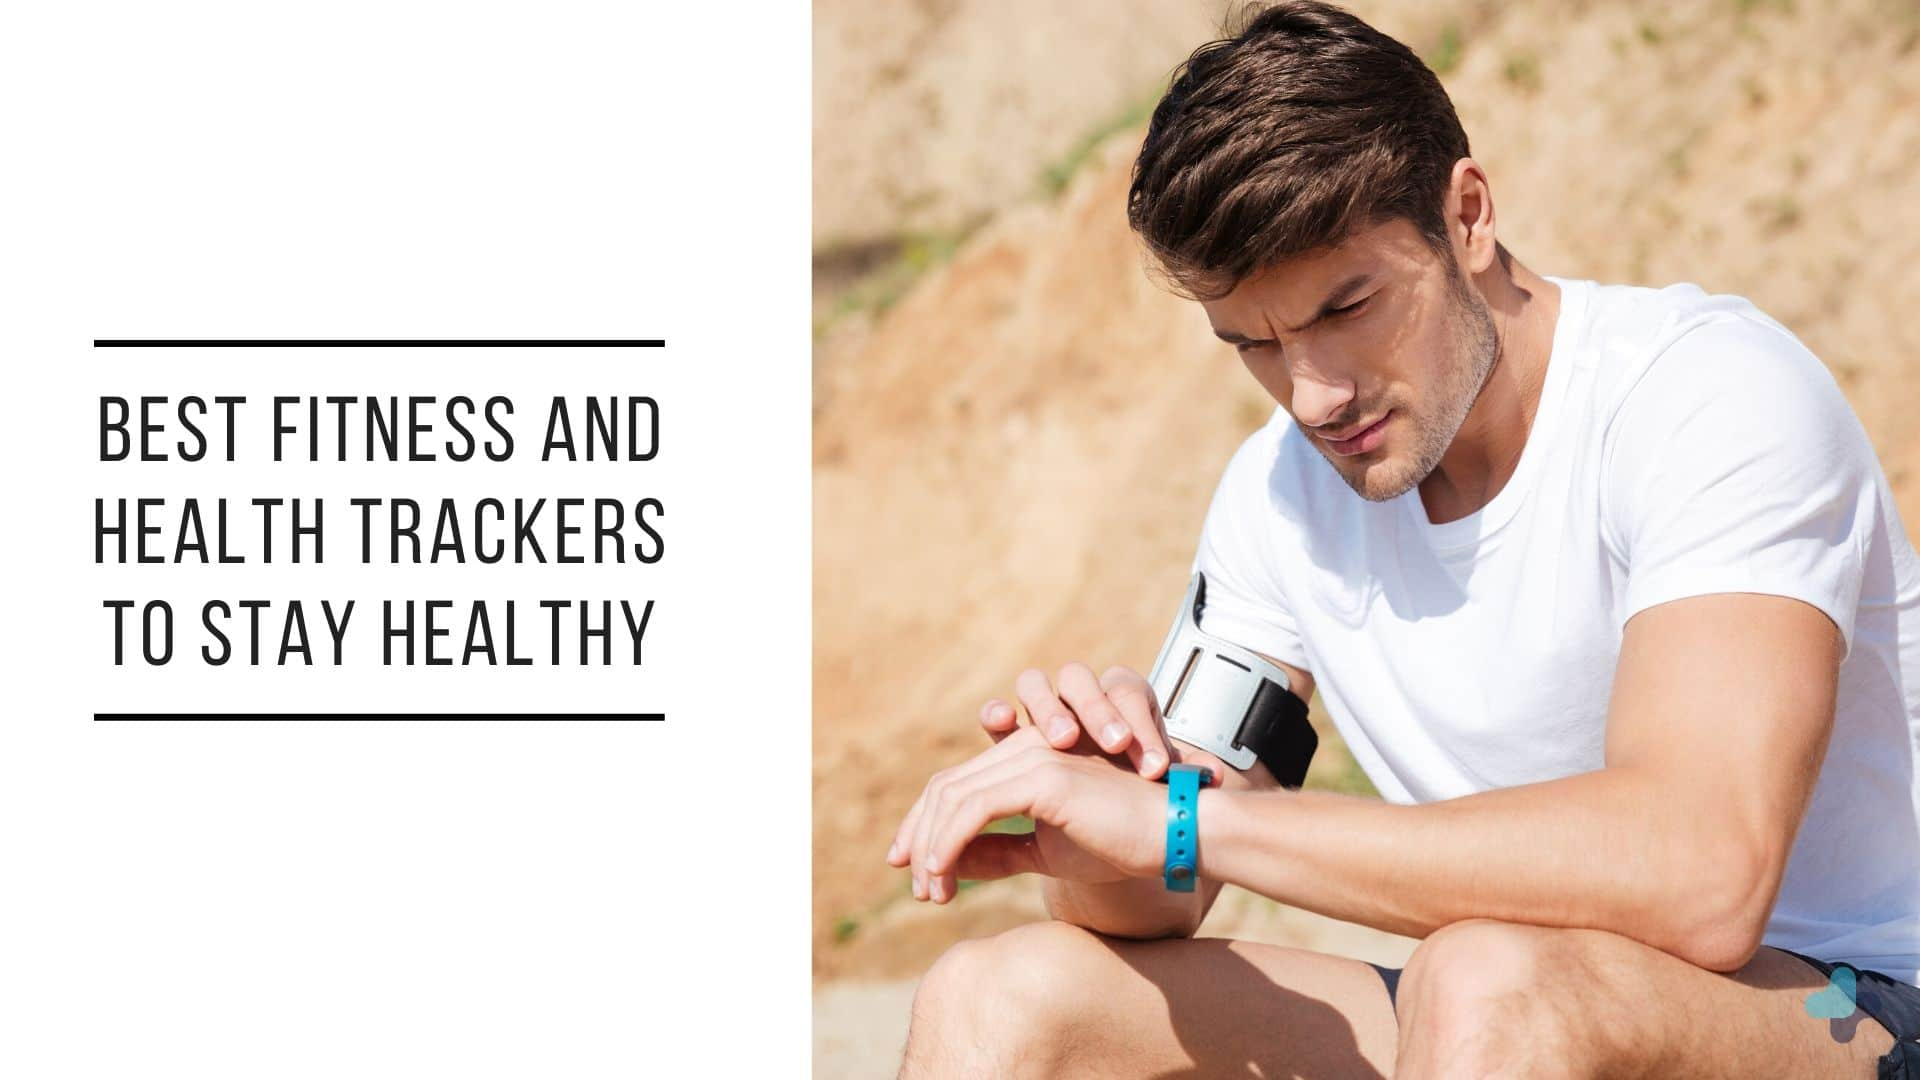 Best Fitness and Health Trackers to Stay Healthy